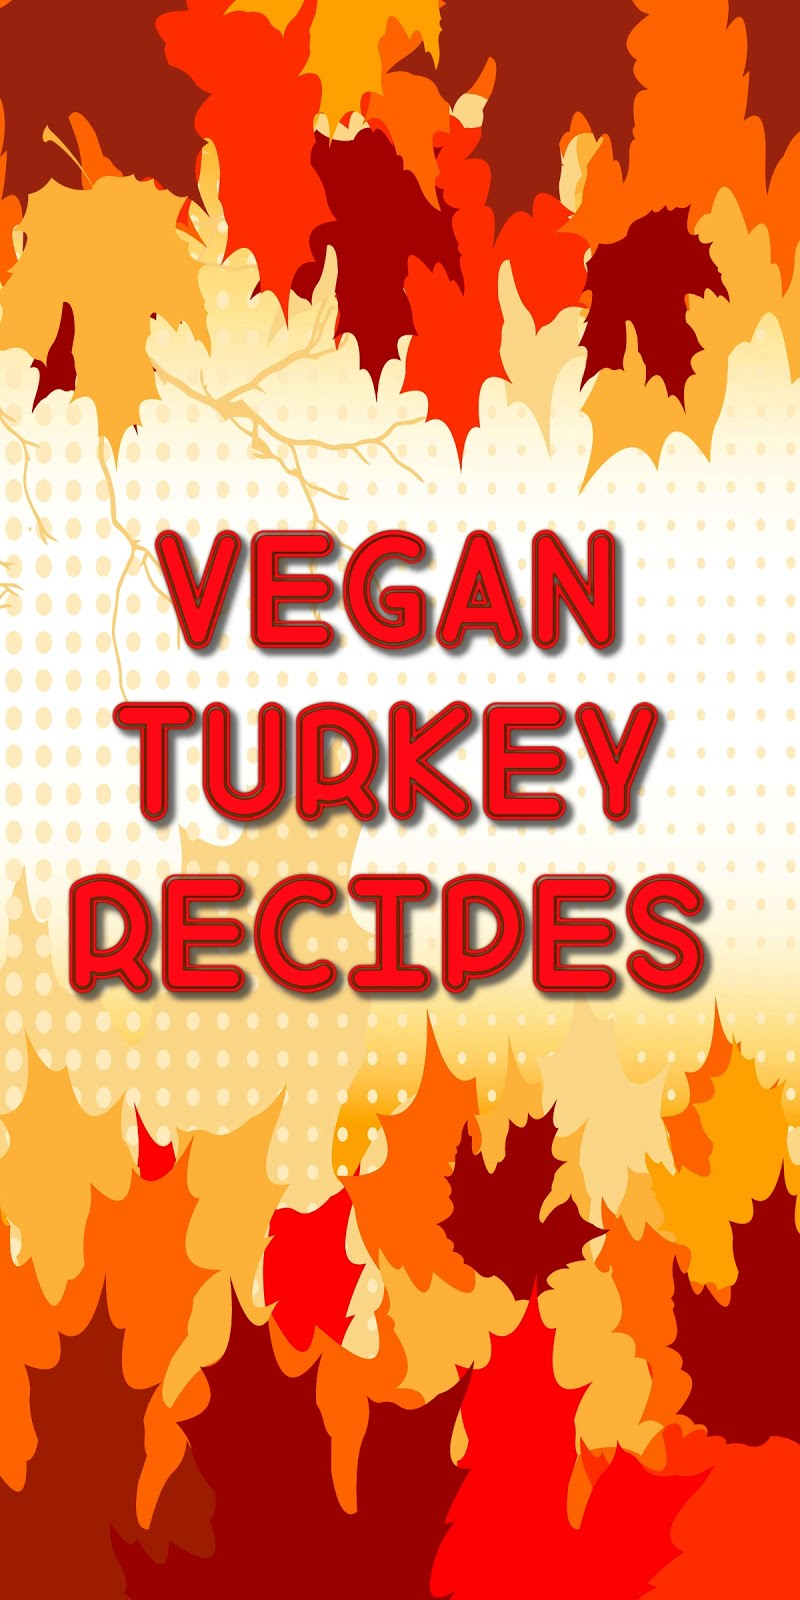 Vegan Turkey Recipes